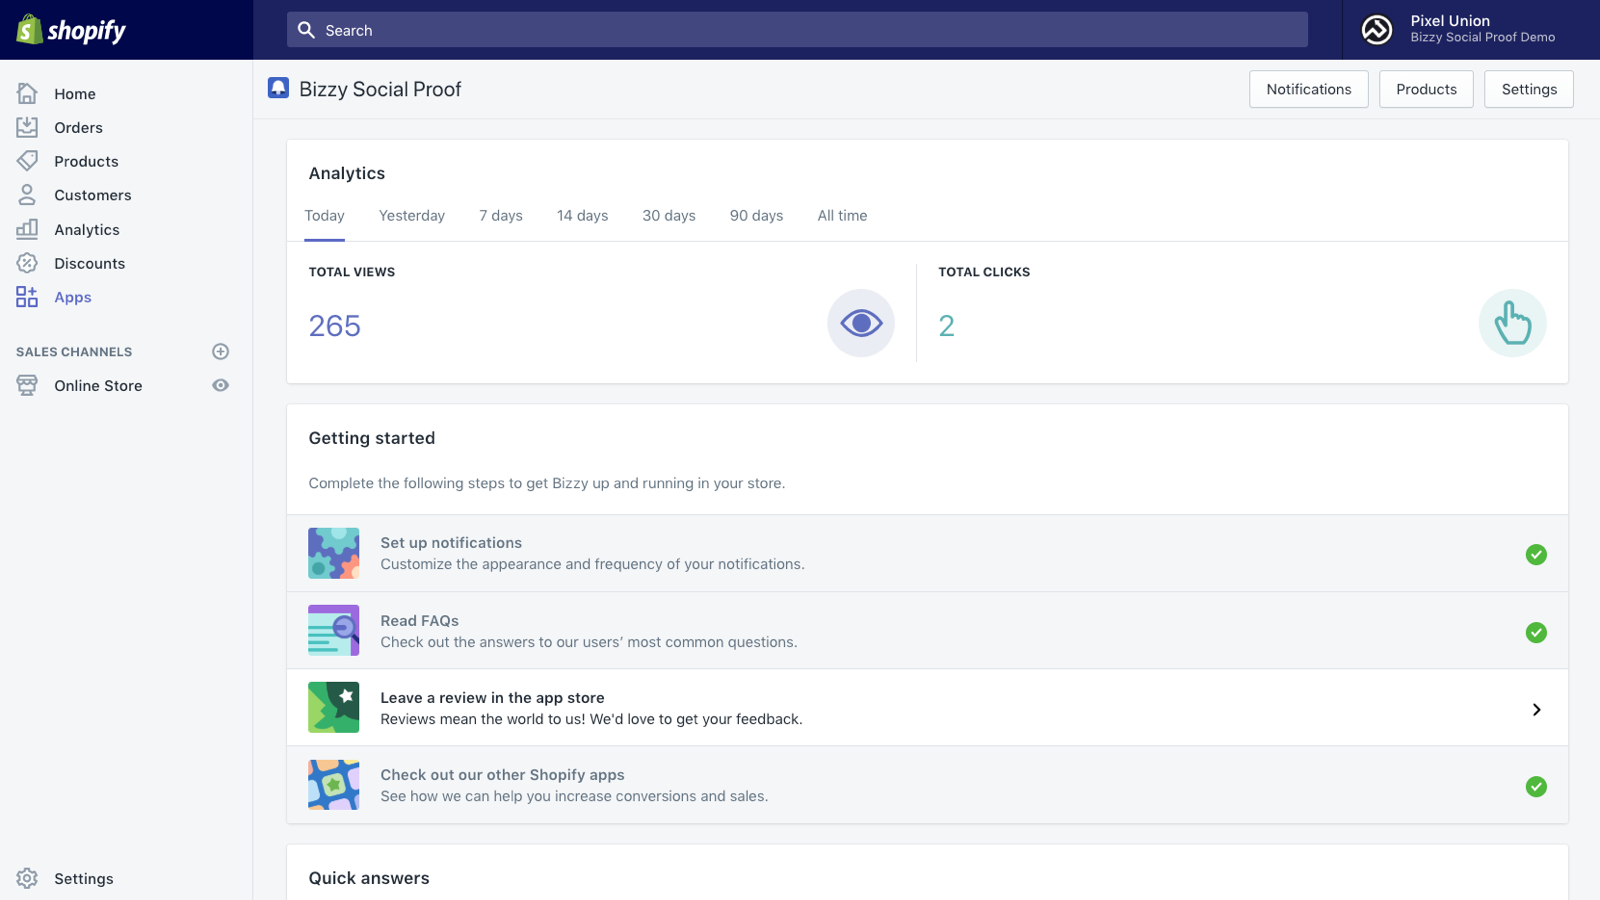 Bizzy Social Proof for Shopify dashboard.